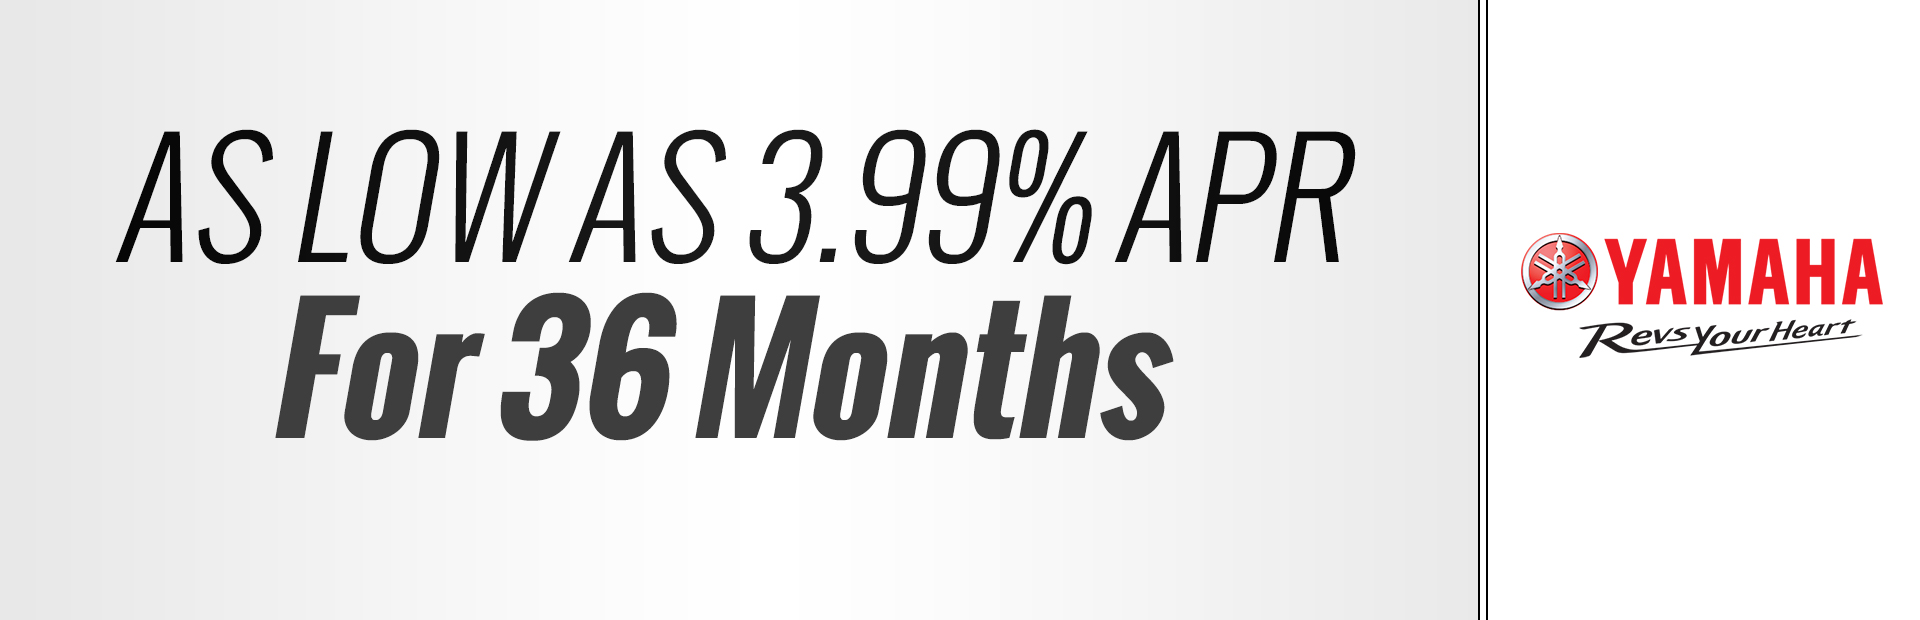 Yamaha: As Low As 3.99% APR For 36 Months